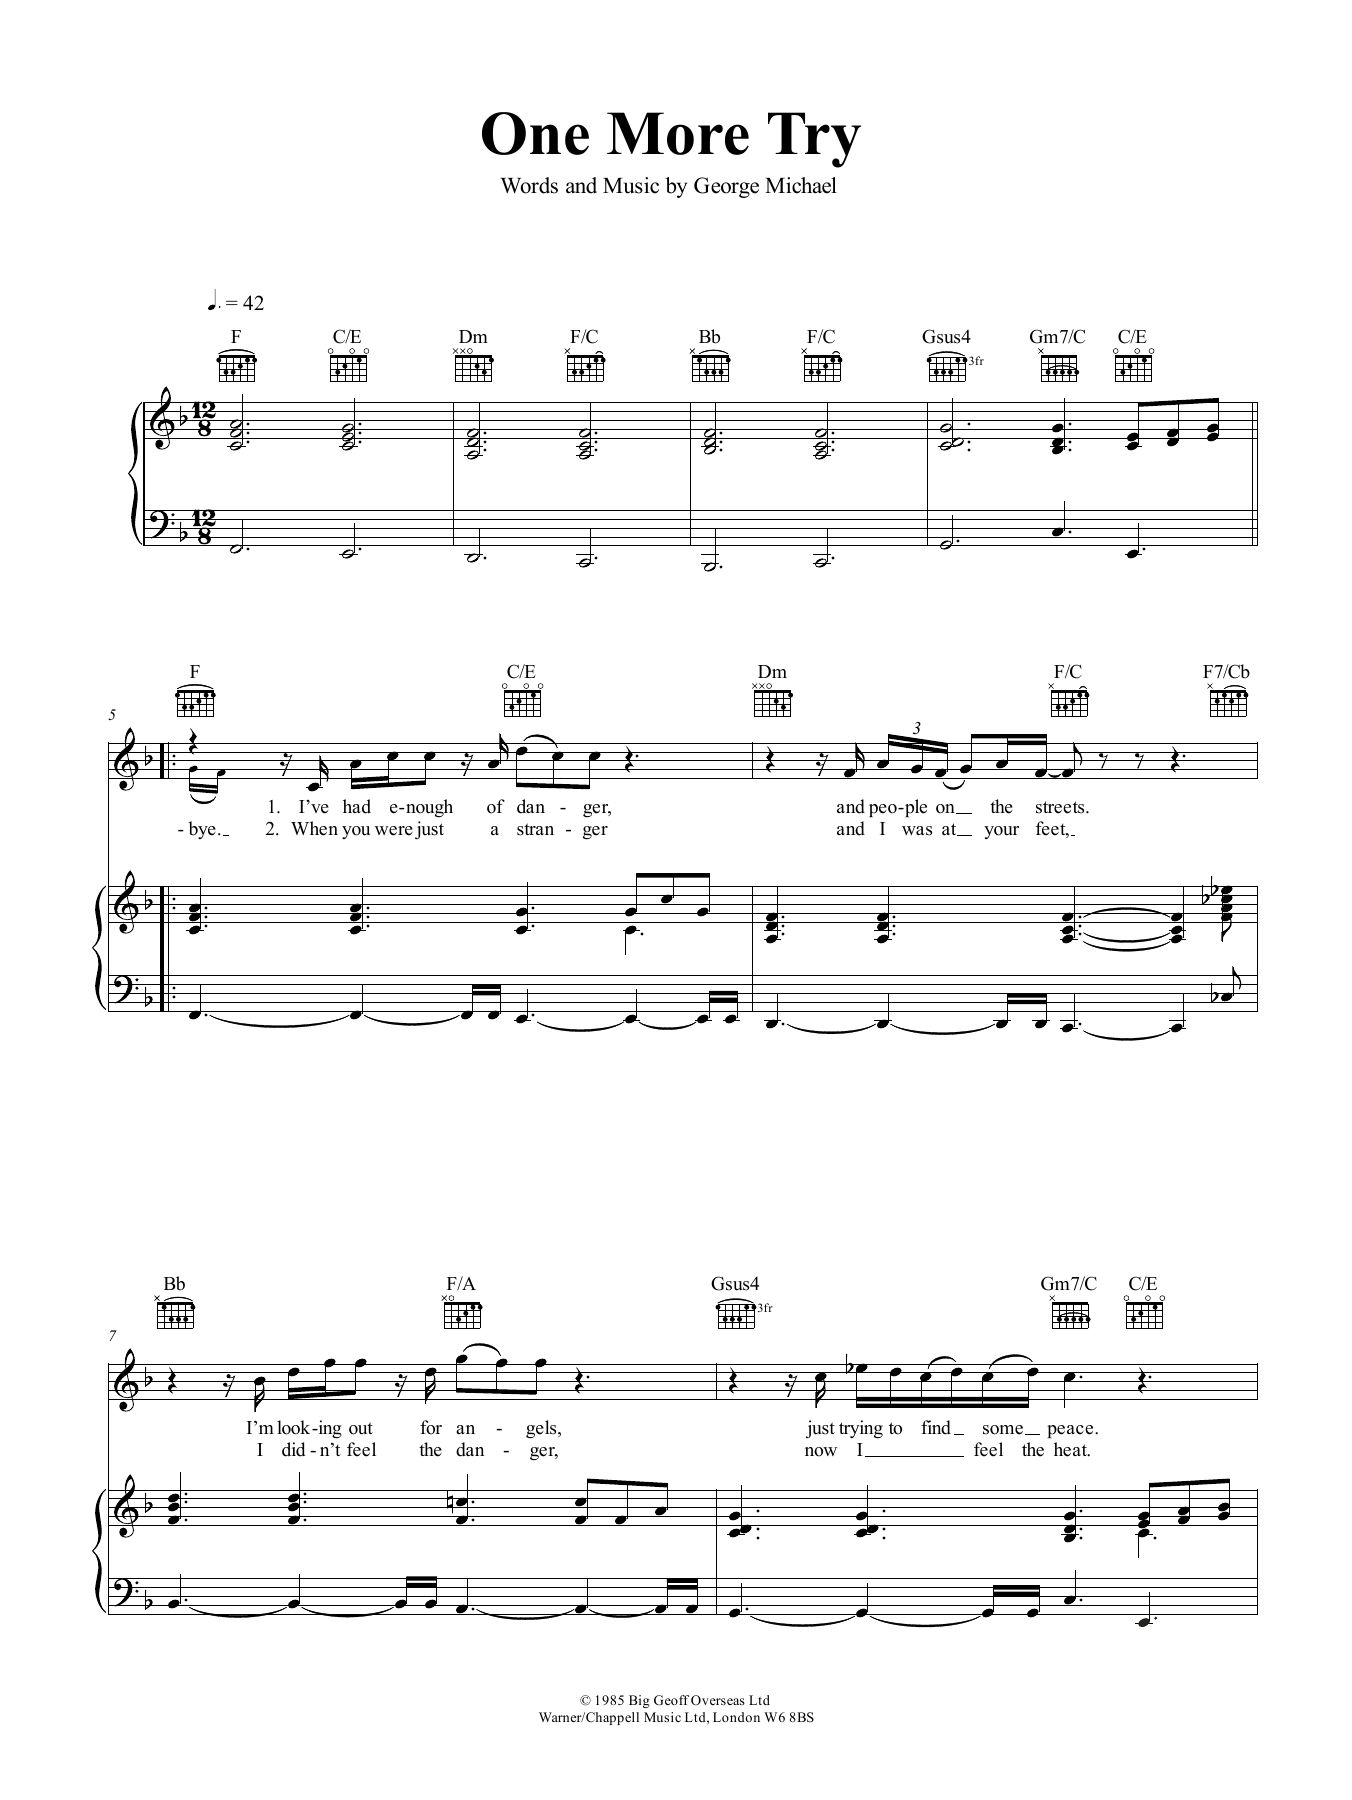 One More Try Sheet Music